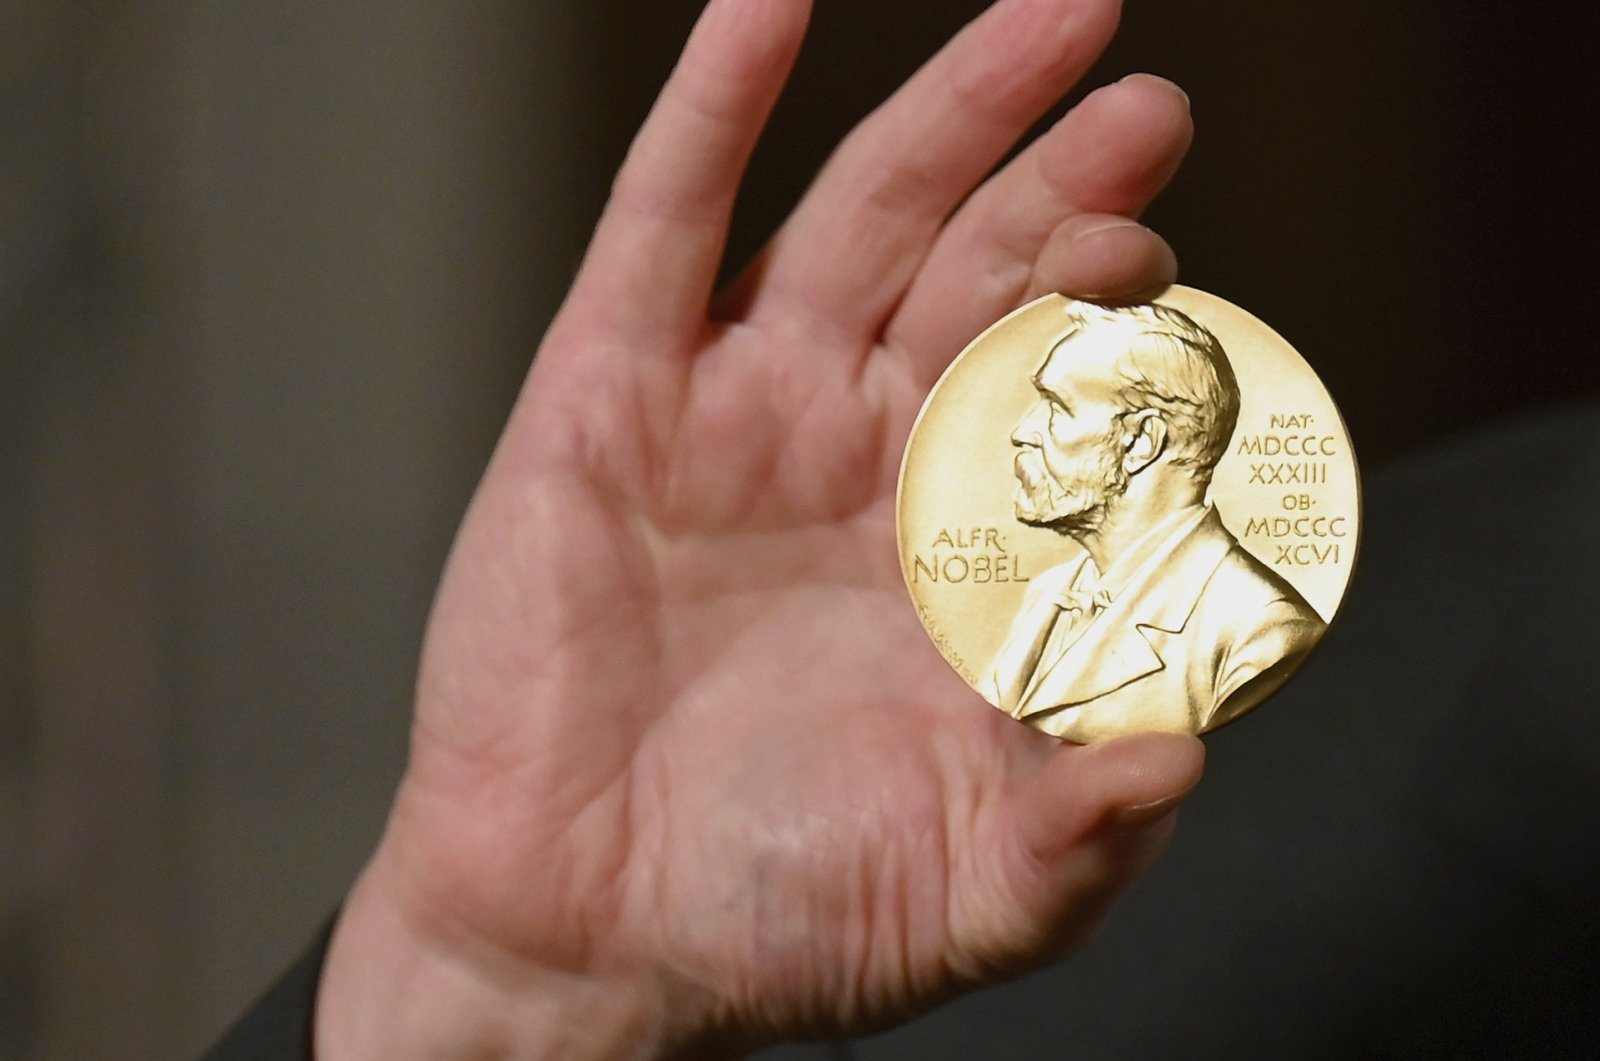 A Nobel medal is held up during a ceremony in New York, U.S., Dec. 8, 2020. (AP File Photo)